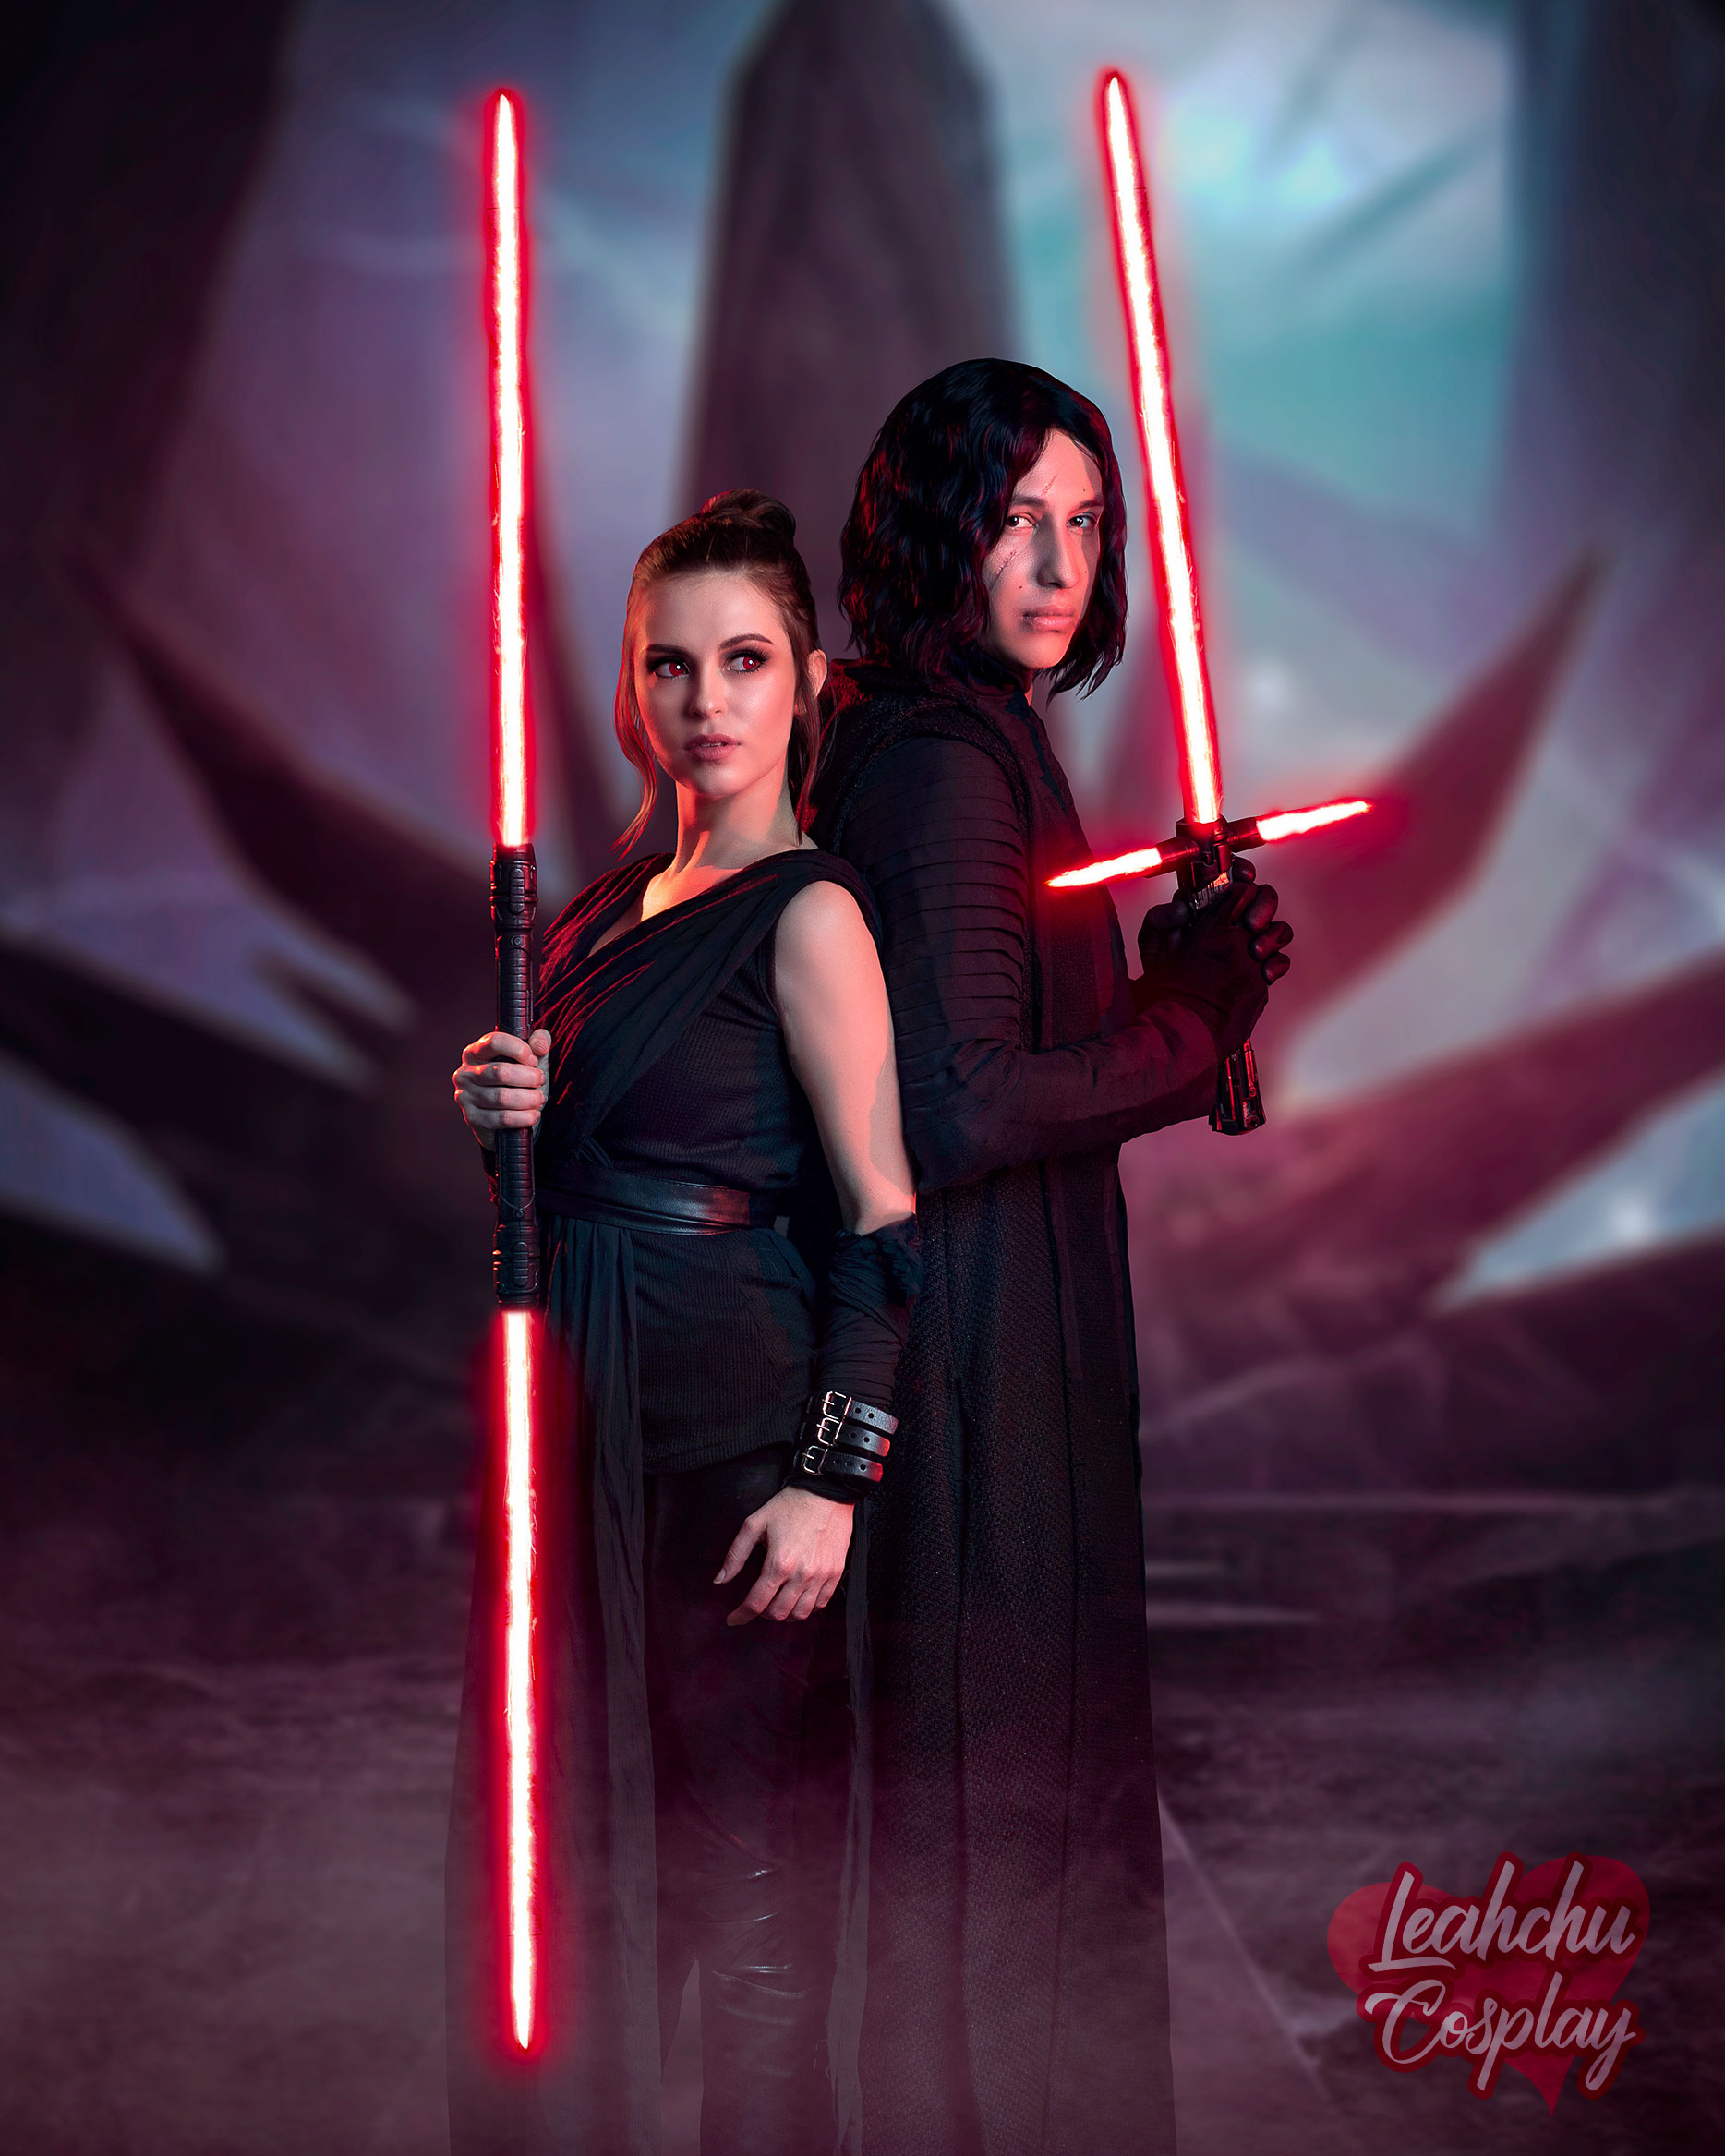 Dark Rey And Kylo Ren Reylo Cosplay Star Wars The Rise Of Skywalker 4 Sold By Leahchu Cosplay On Storenvy